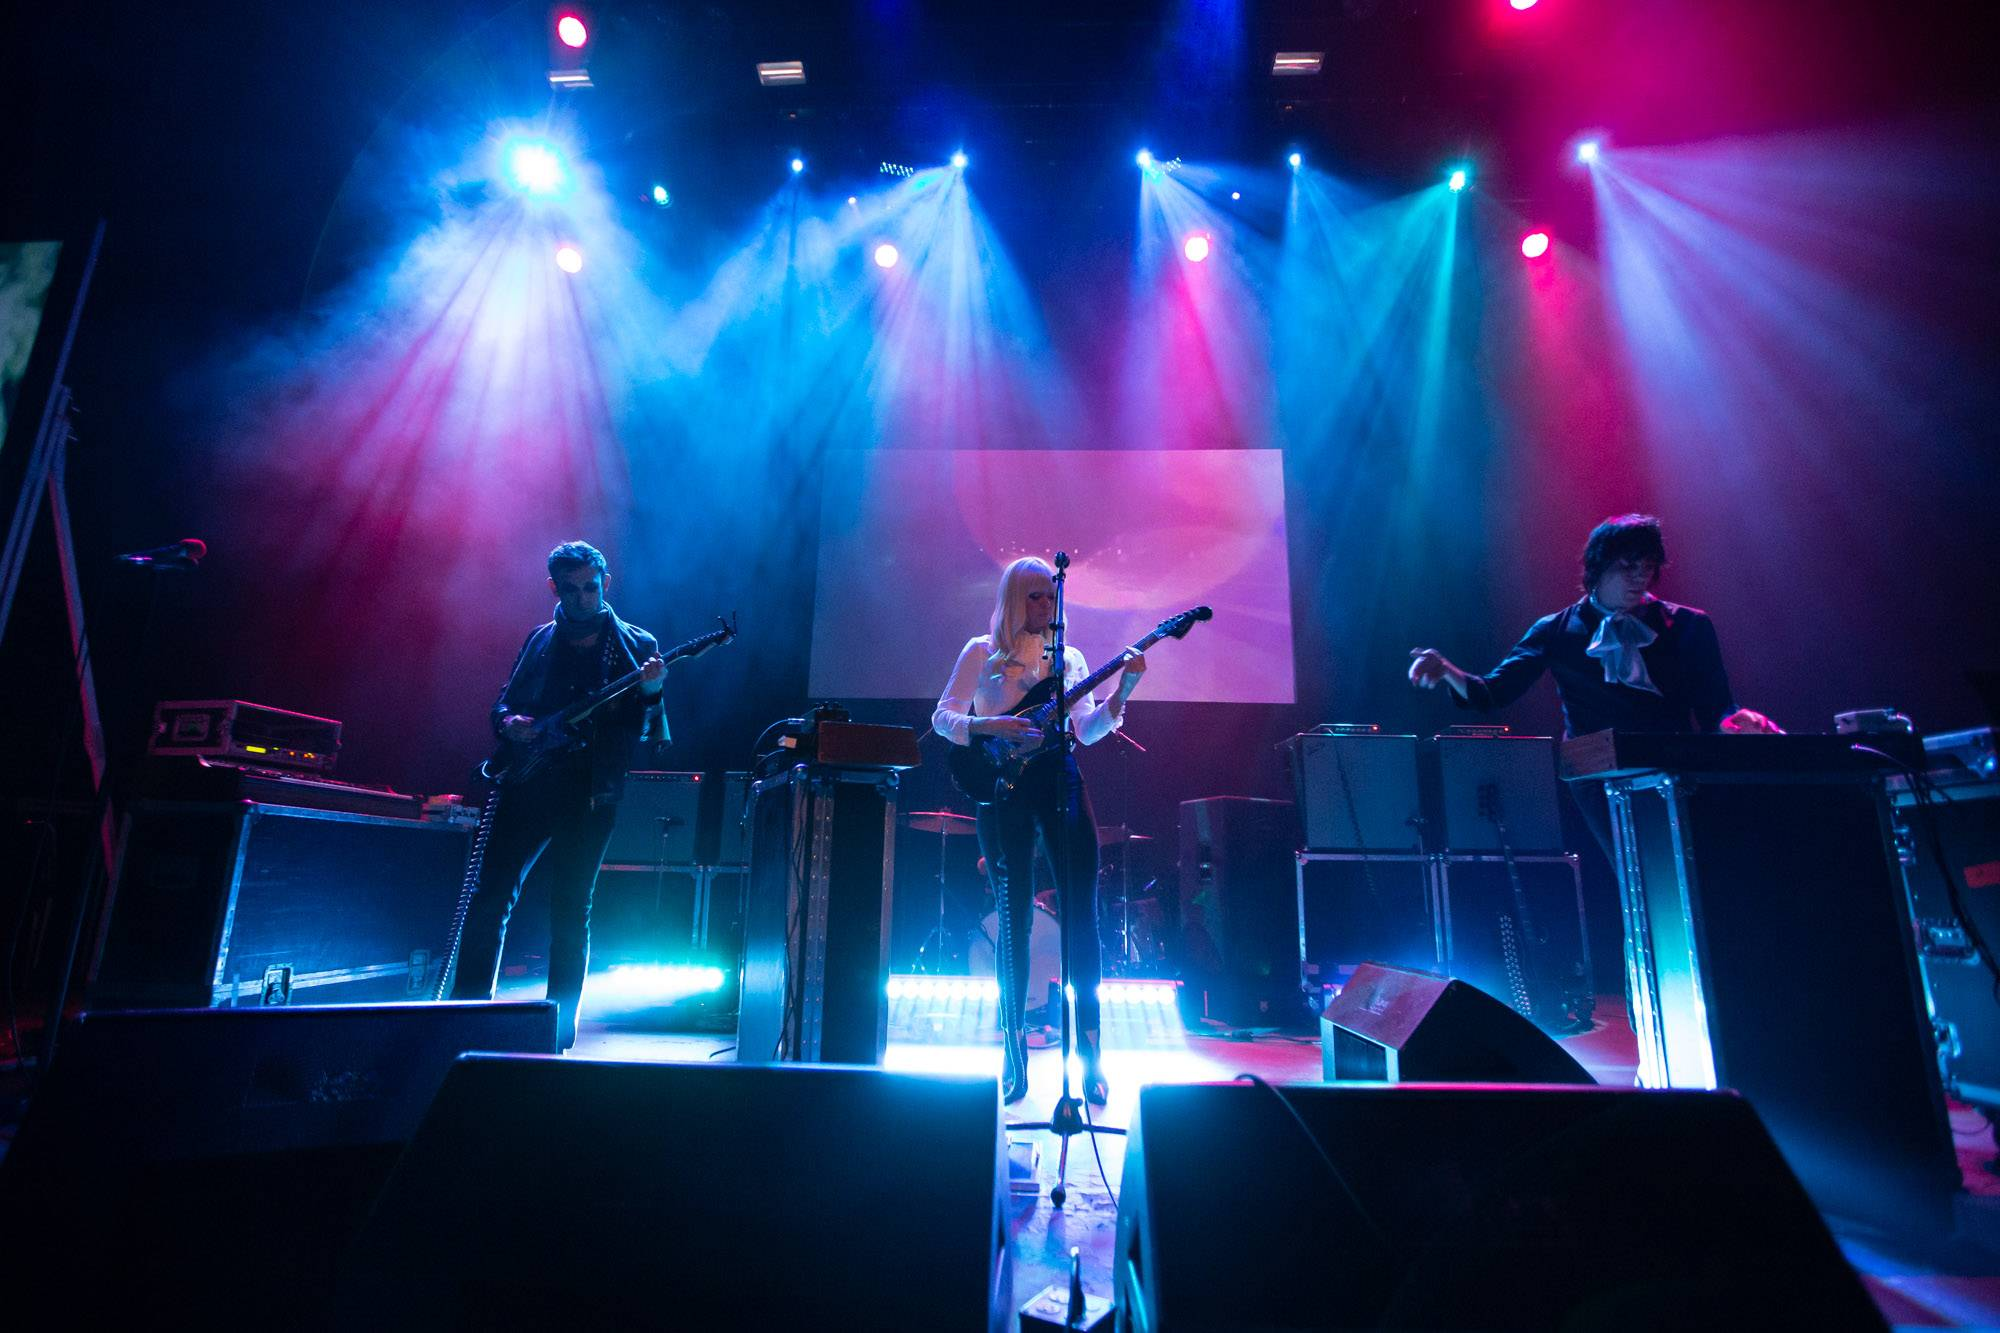 Chromatics at the Vogue Theatre, Vancouver, Jun 6 2019. Kirk Chantraine photo.